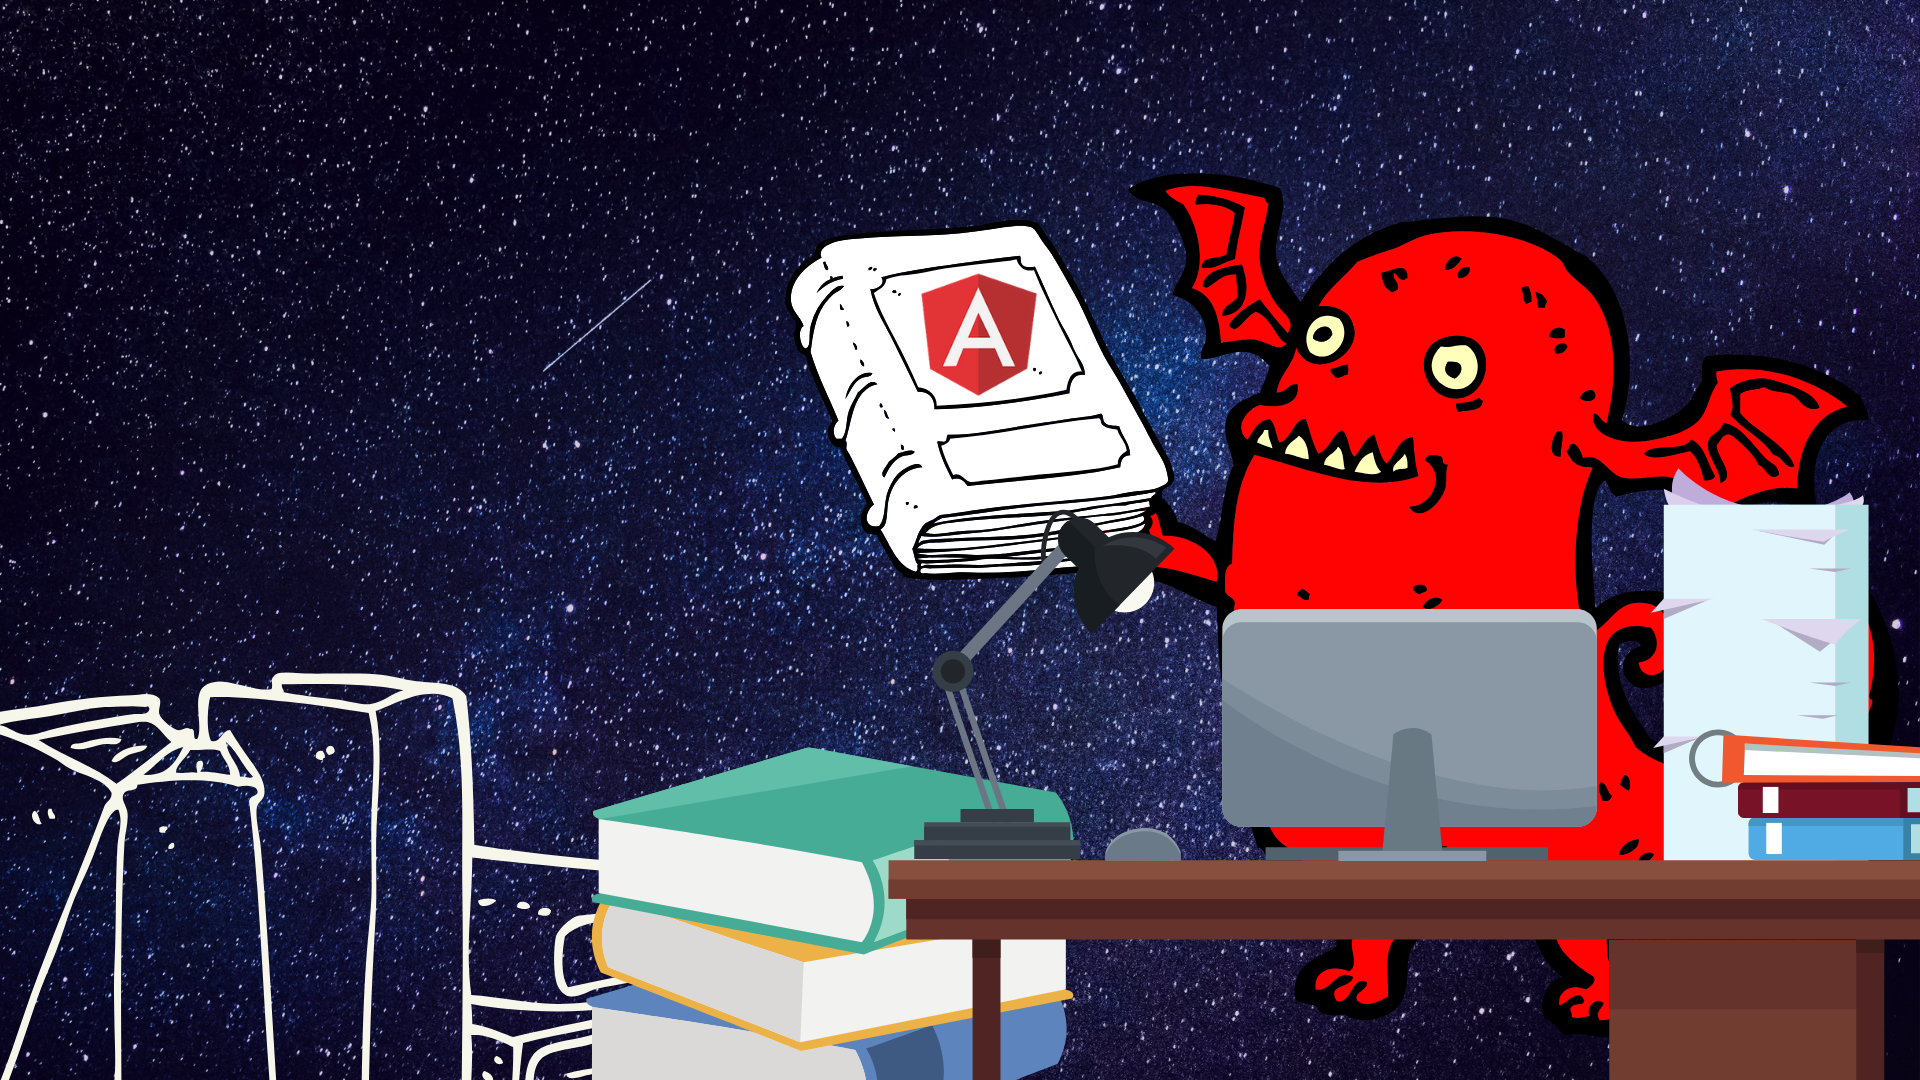 19 Things You Need to Learn to Become an Effective Angular Developer